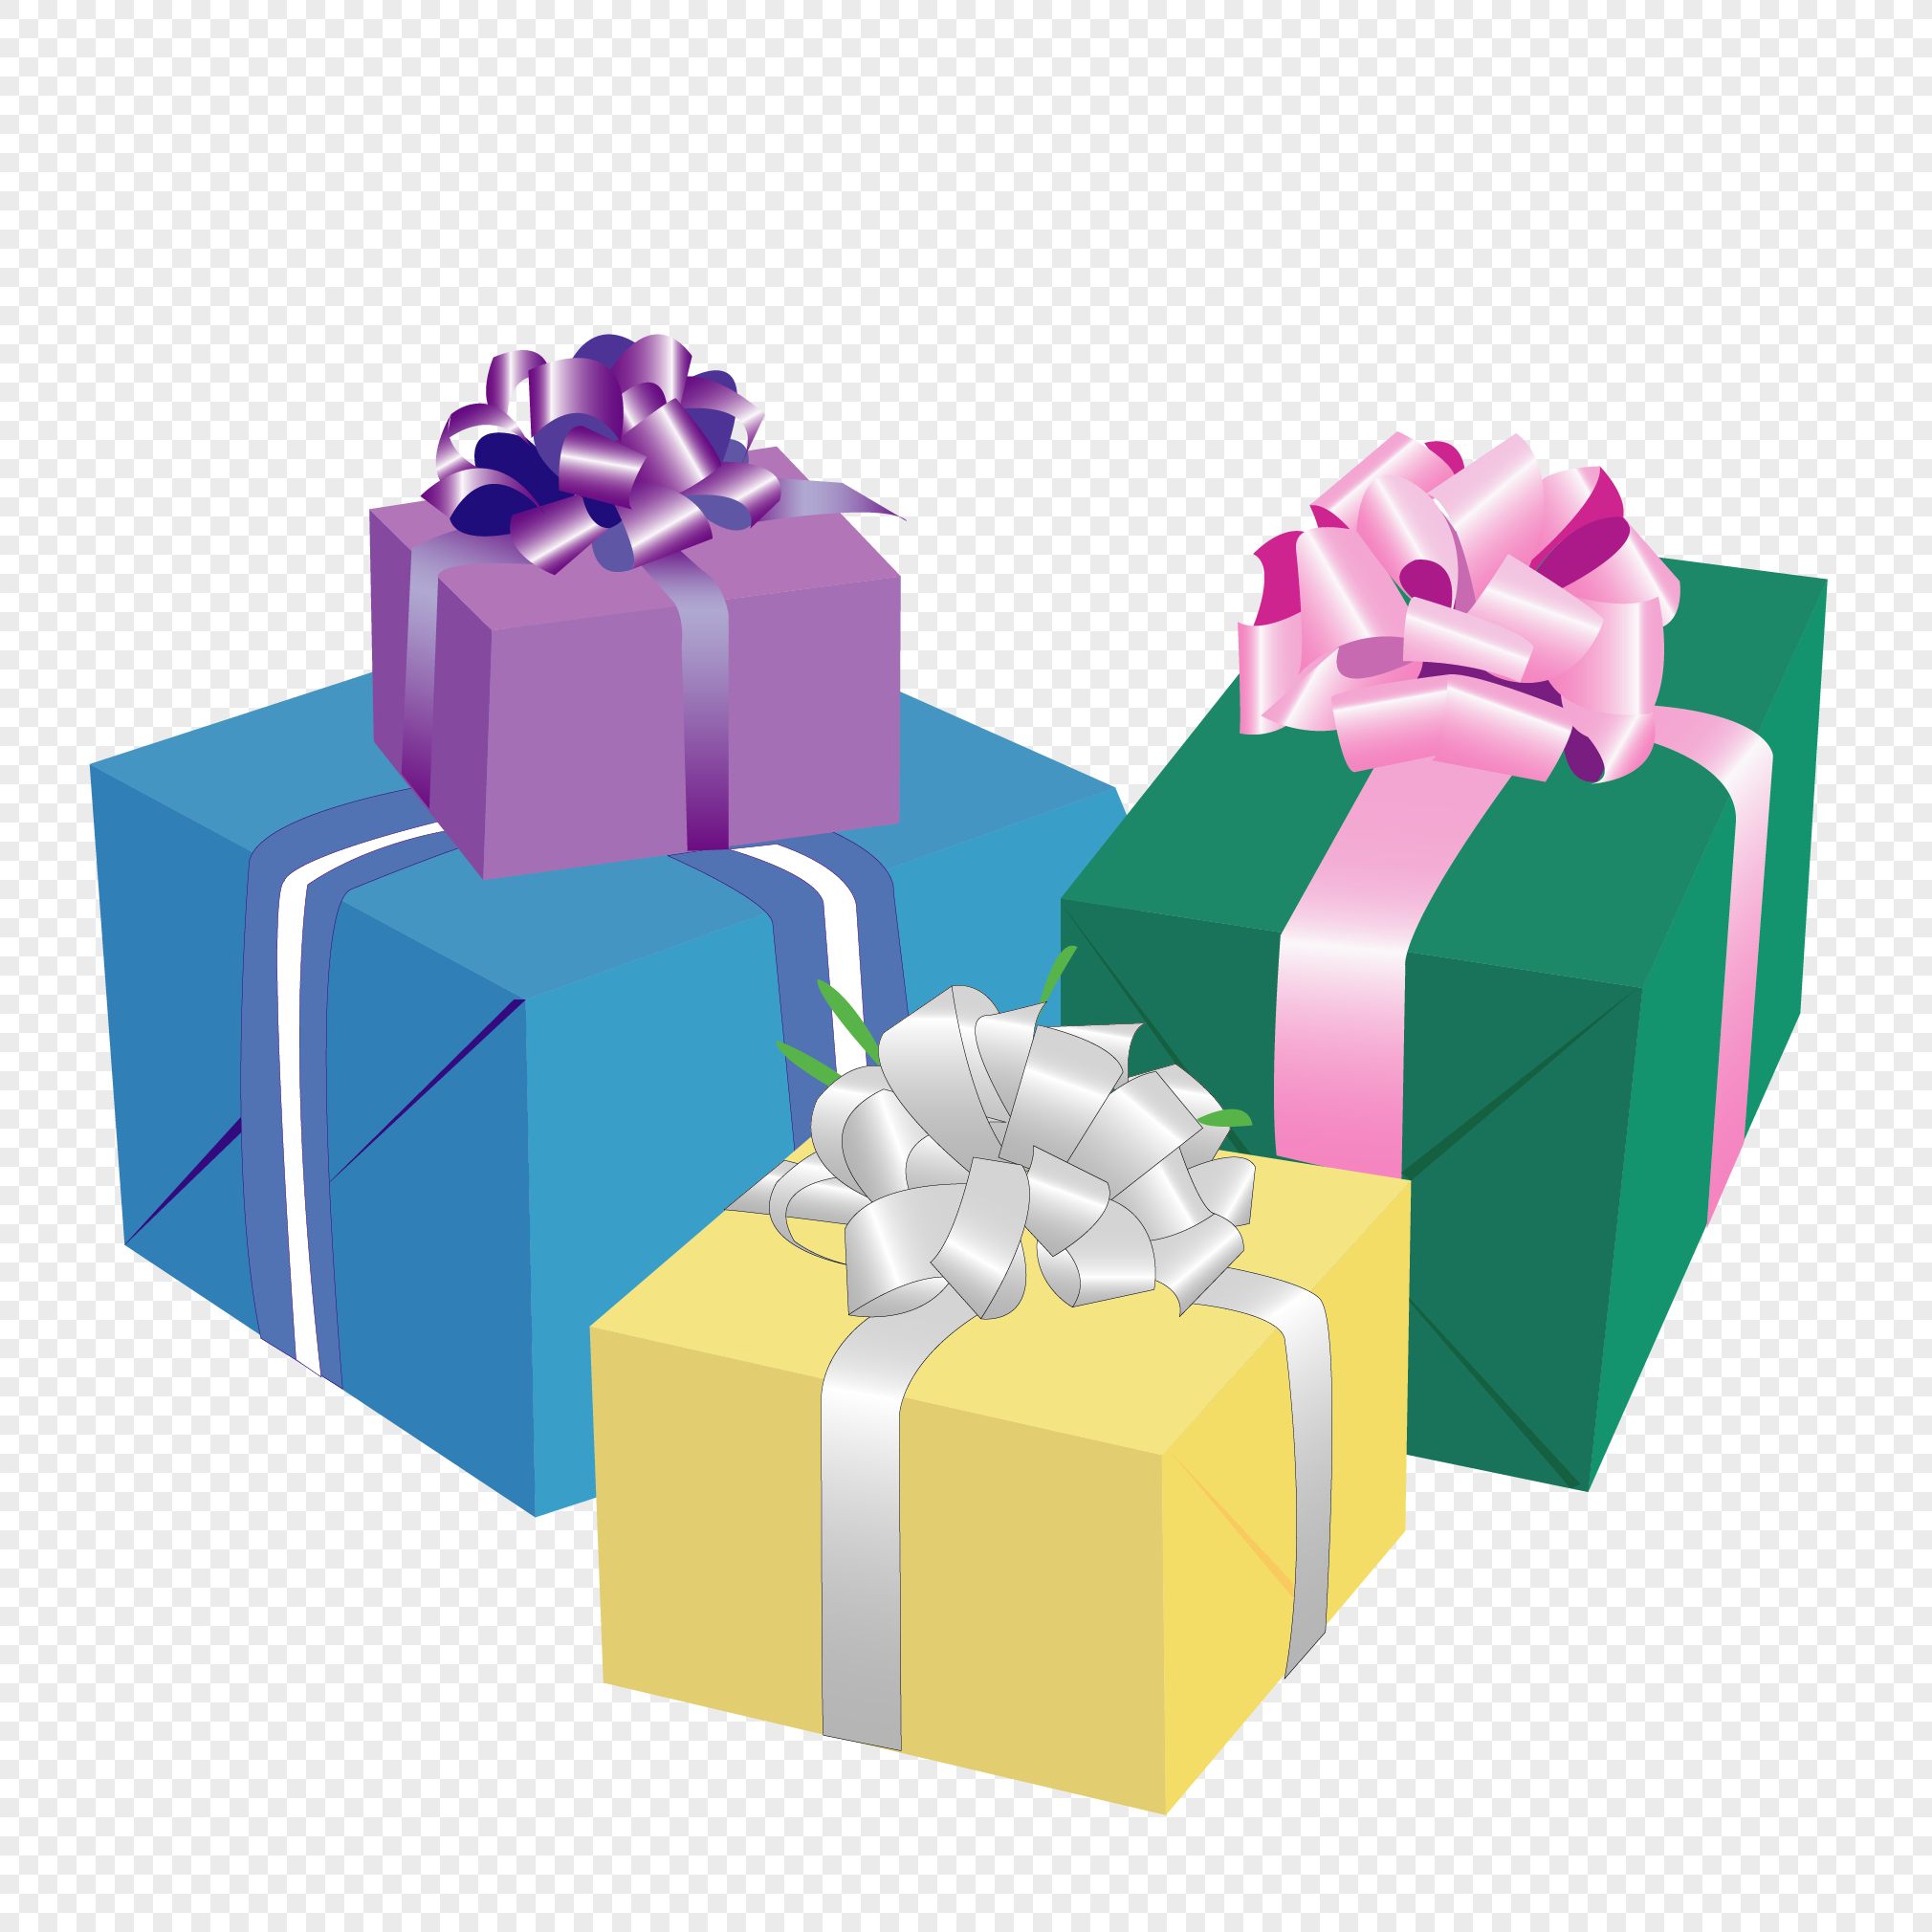 Birthday Gift Box Png Image Picture Free Download 400756318 Lovepik Com